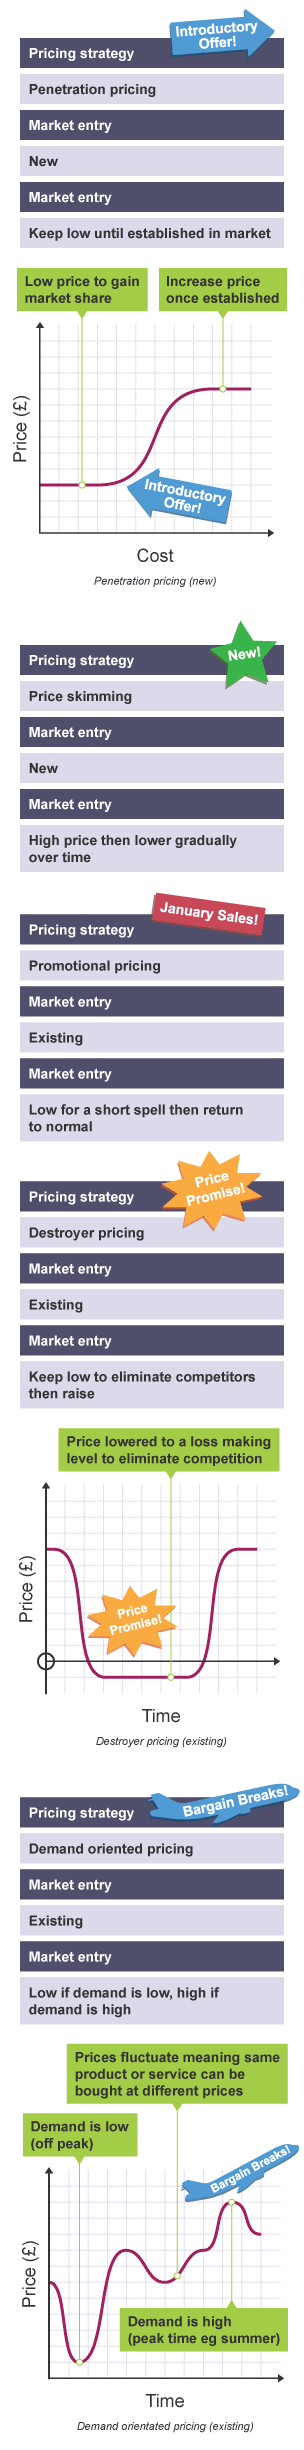 market penetration pricing strategy This free ebook explains how to develop a market penetration strategy using the ansoff matrix - download it now for your pc, laptop, tablet, kindle or smartphone.